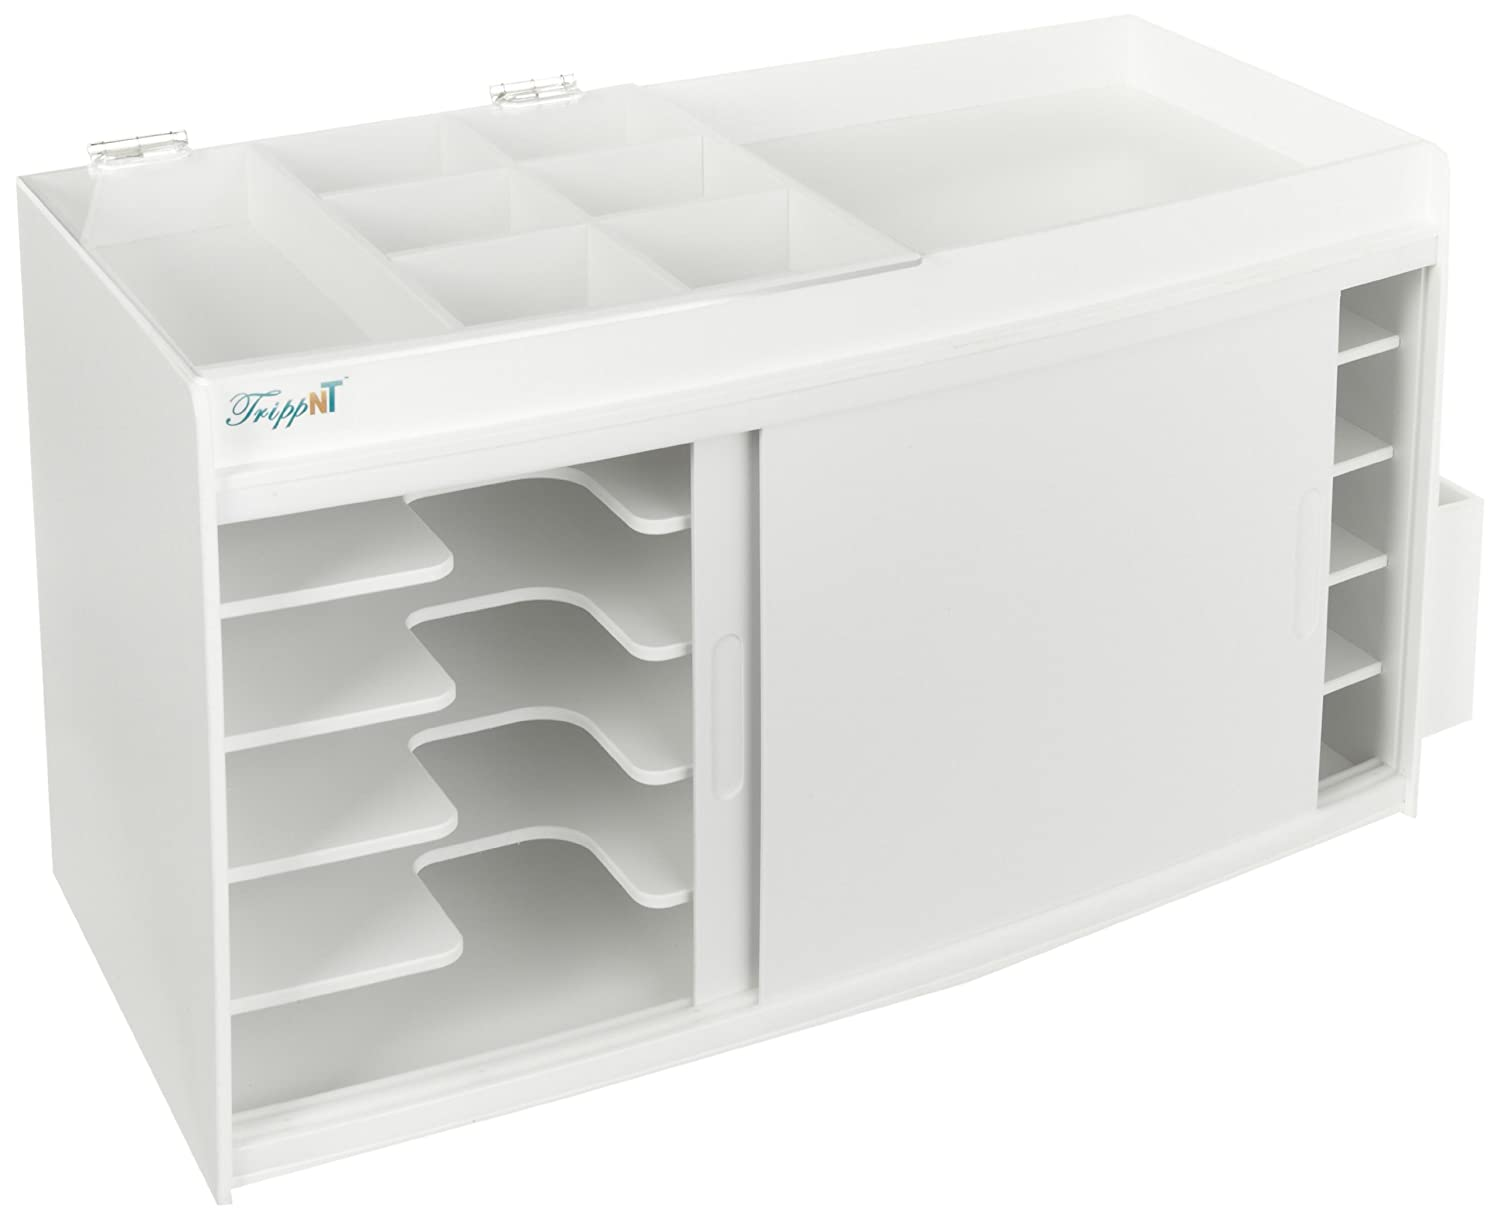 24.5 Width x 14 Height x 10.75 Depth 24.5 Width x 14 Height x 10.75 Depth TrippNT 50964 White PVC GC Column and Storage Cabinet with Light-Proof Door 15.6lbs